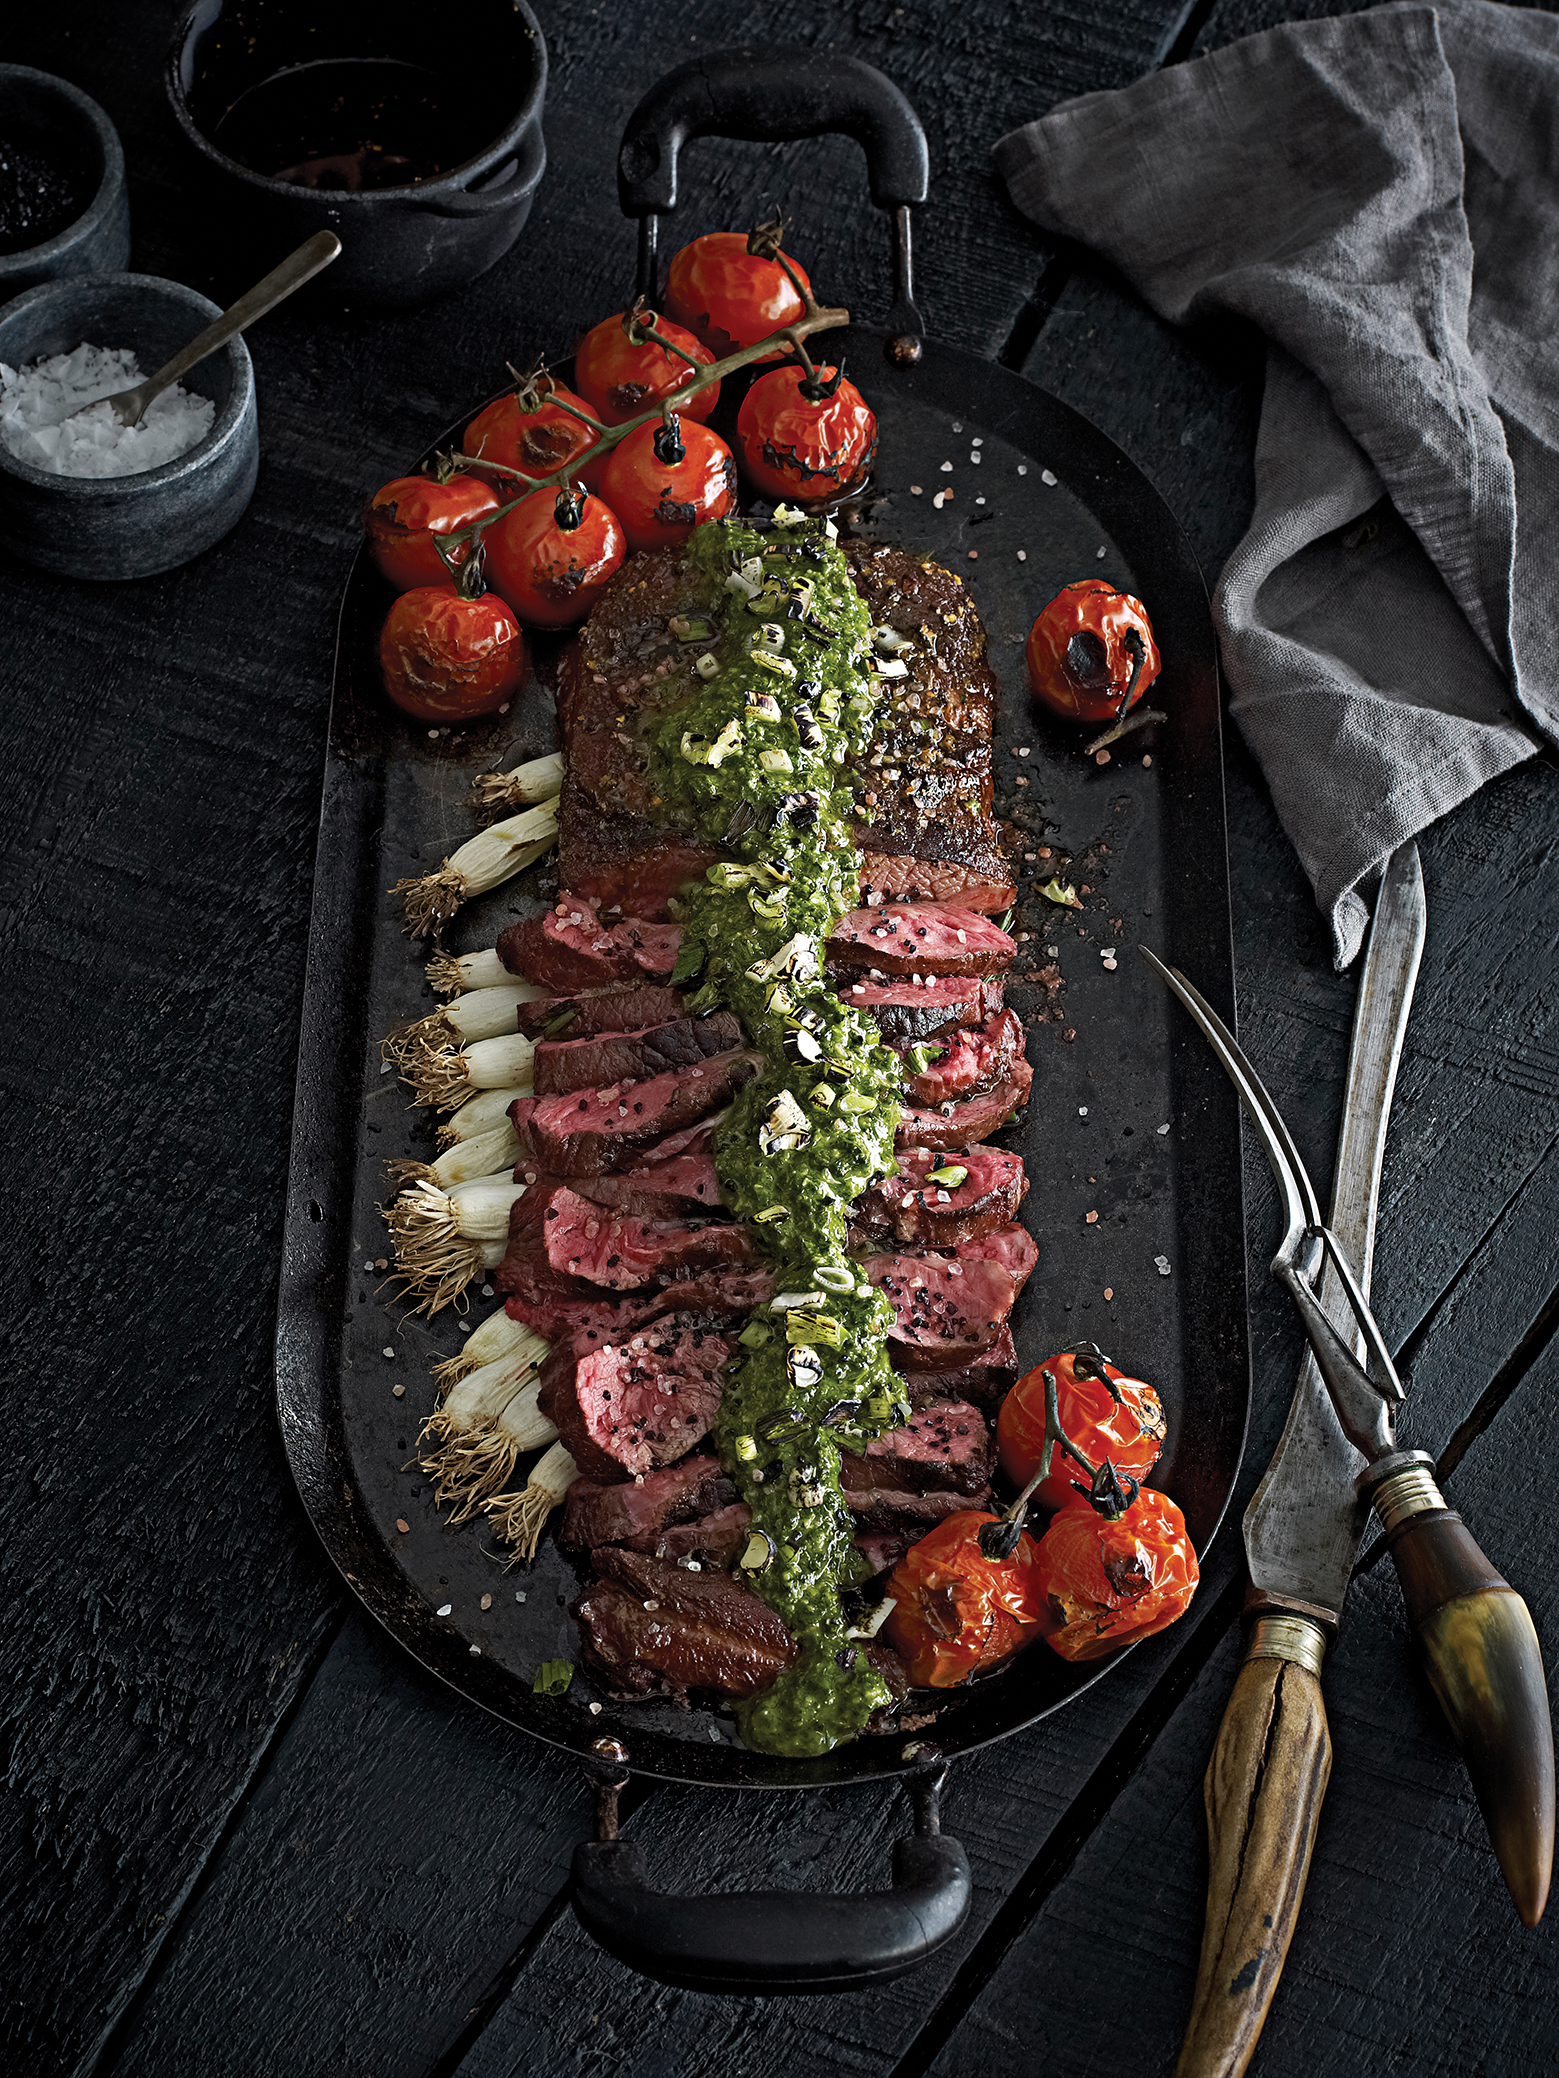 Photography Steak Chimichurri Spread